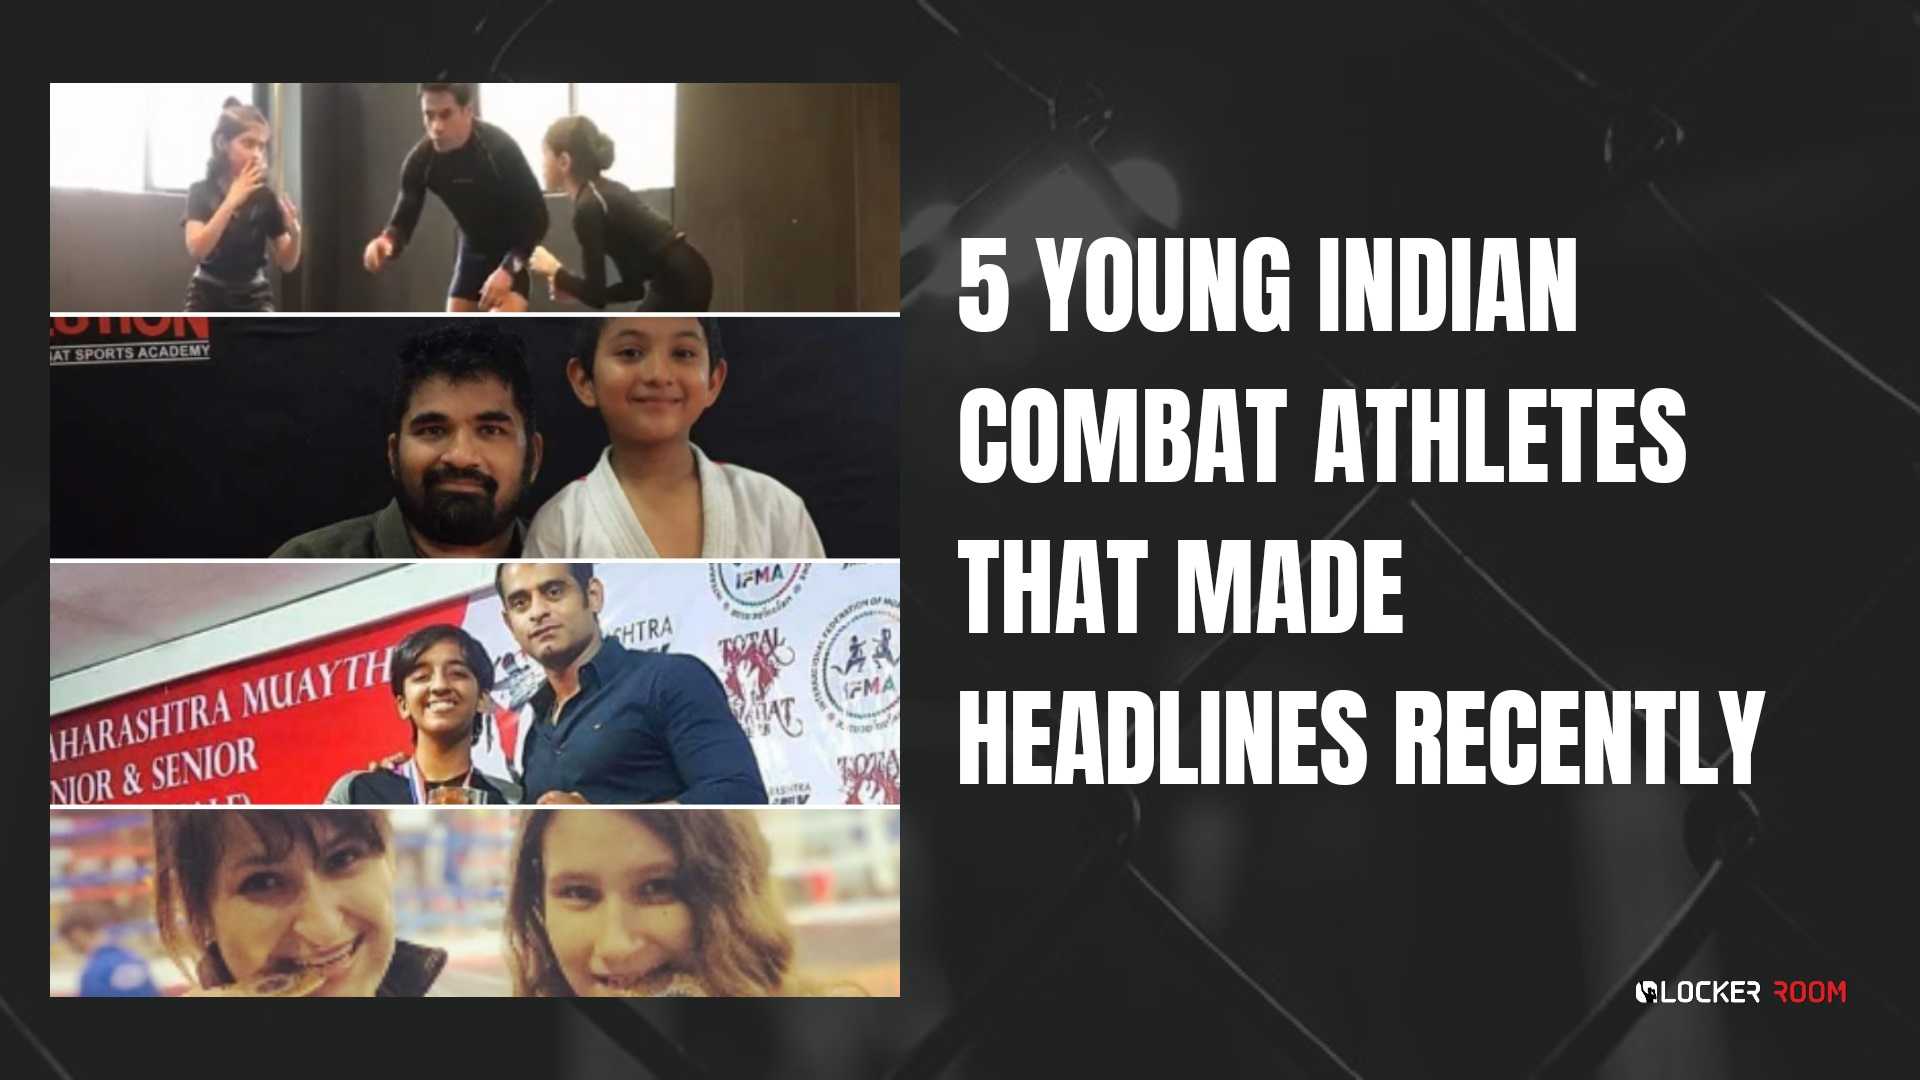 https://lockerroom.in/blog/view/5-Young-Indian-Combat-Athletes-that-made-headlines-recently